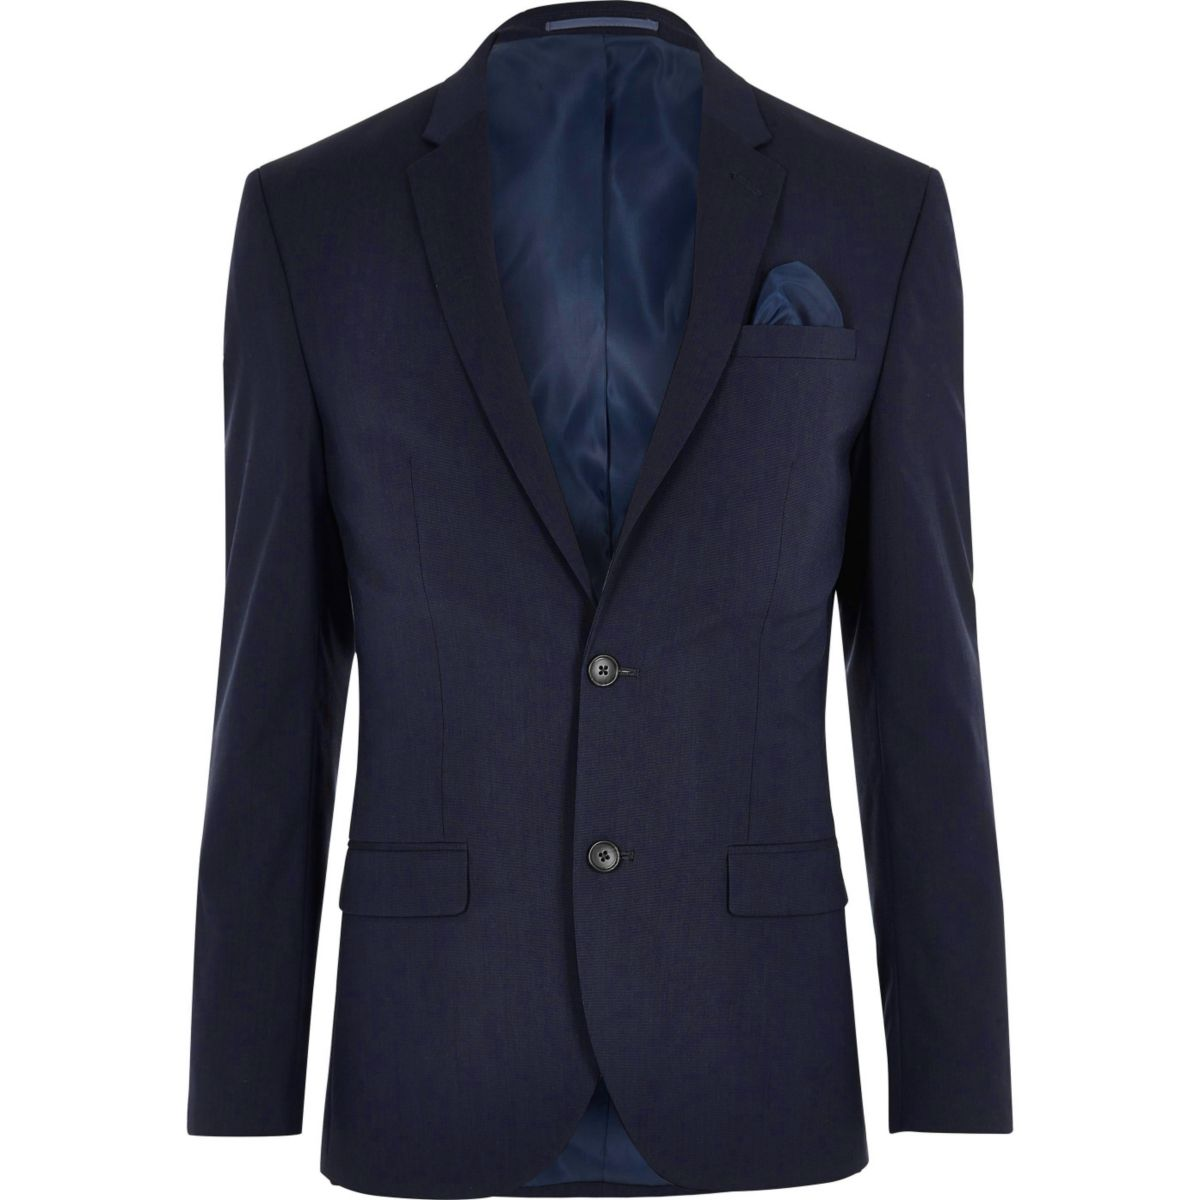 Free shipping on men's suits on sale at manakamanamobilecenter.tk Find great prices on suiting from the best brands. Totally free shipping and returns.